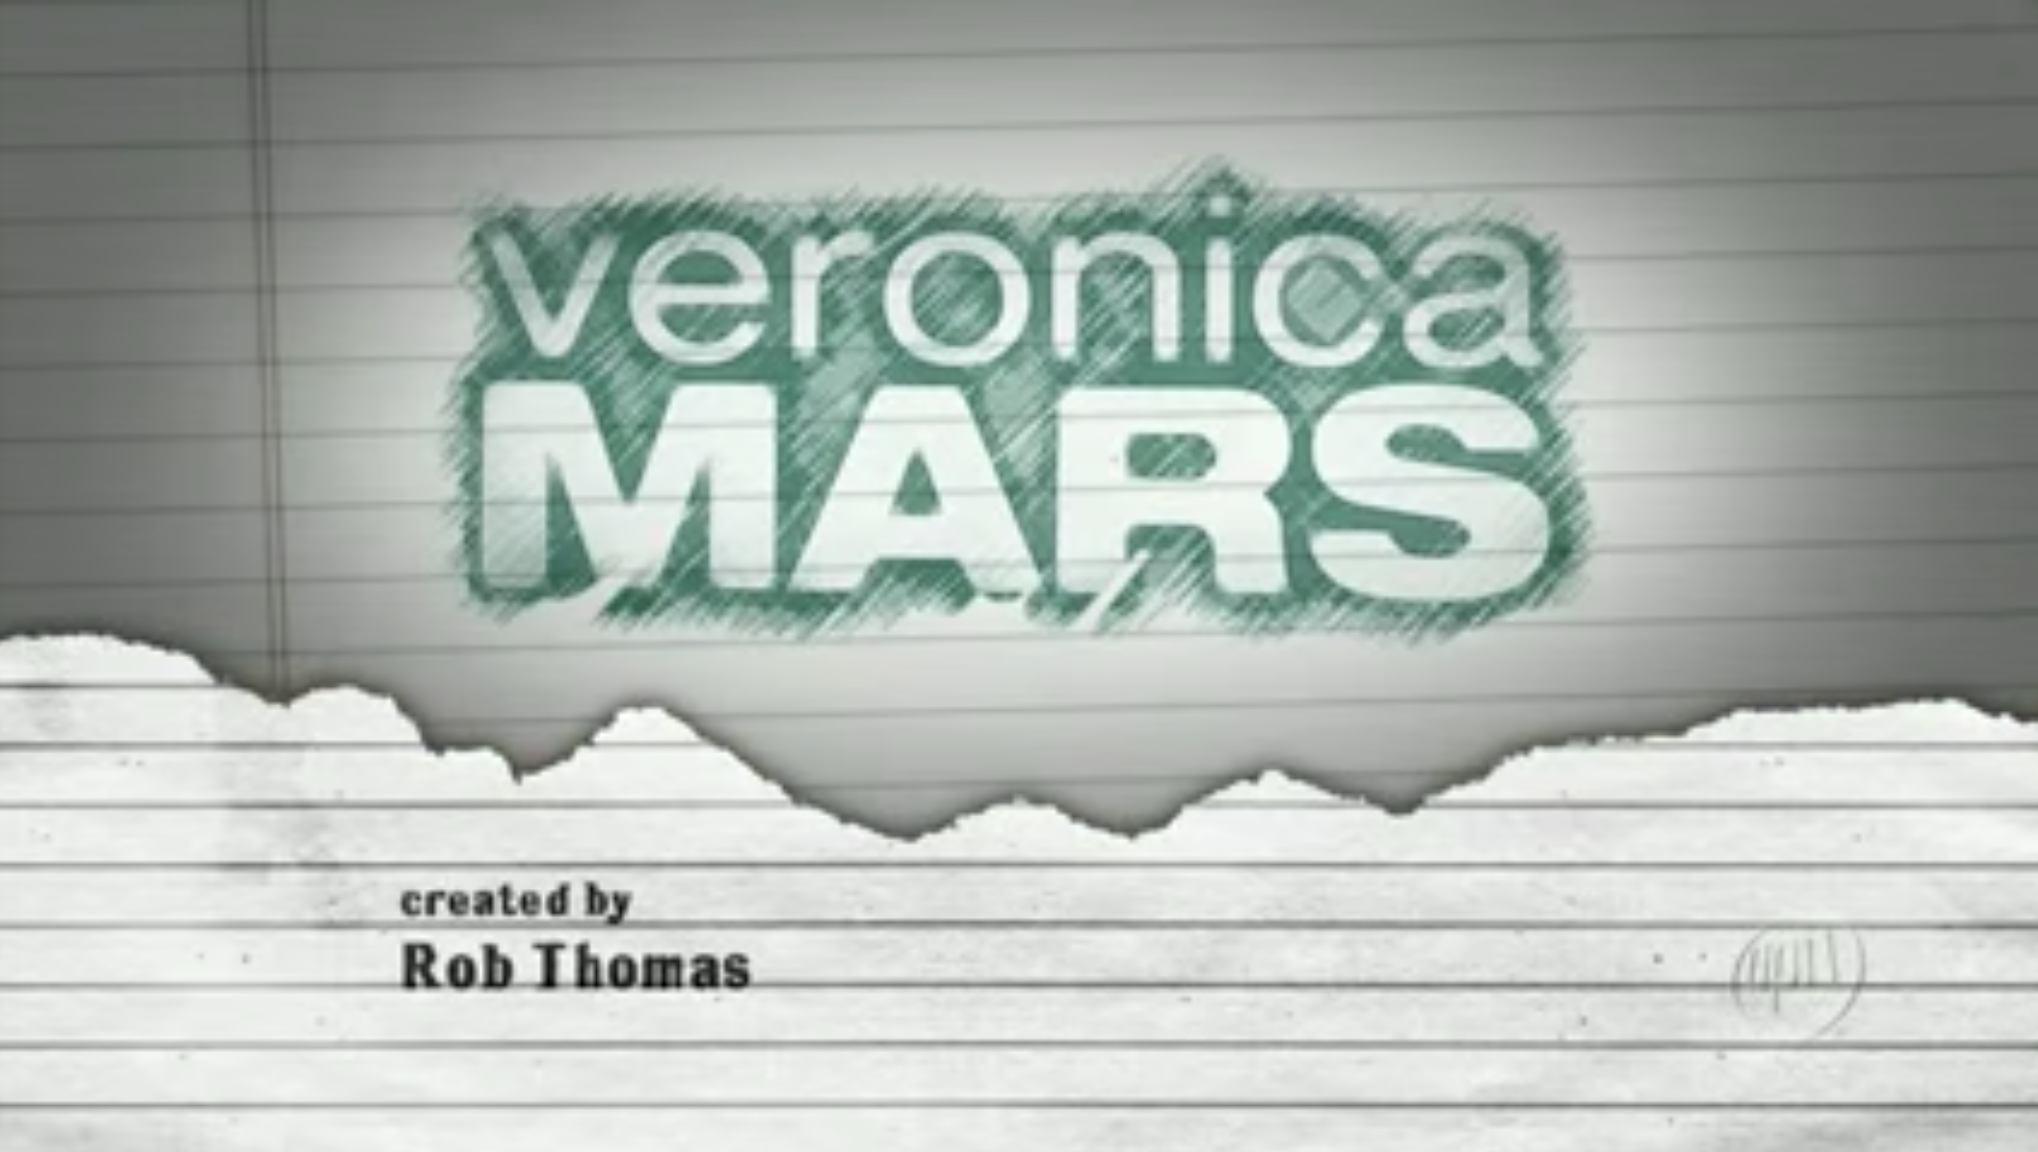 """Veronica Mars"" title card — which is the title of the show in pencil on notebook paper."